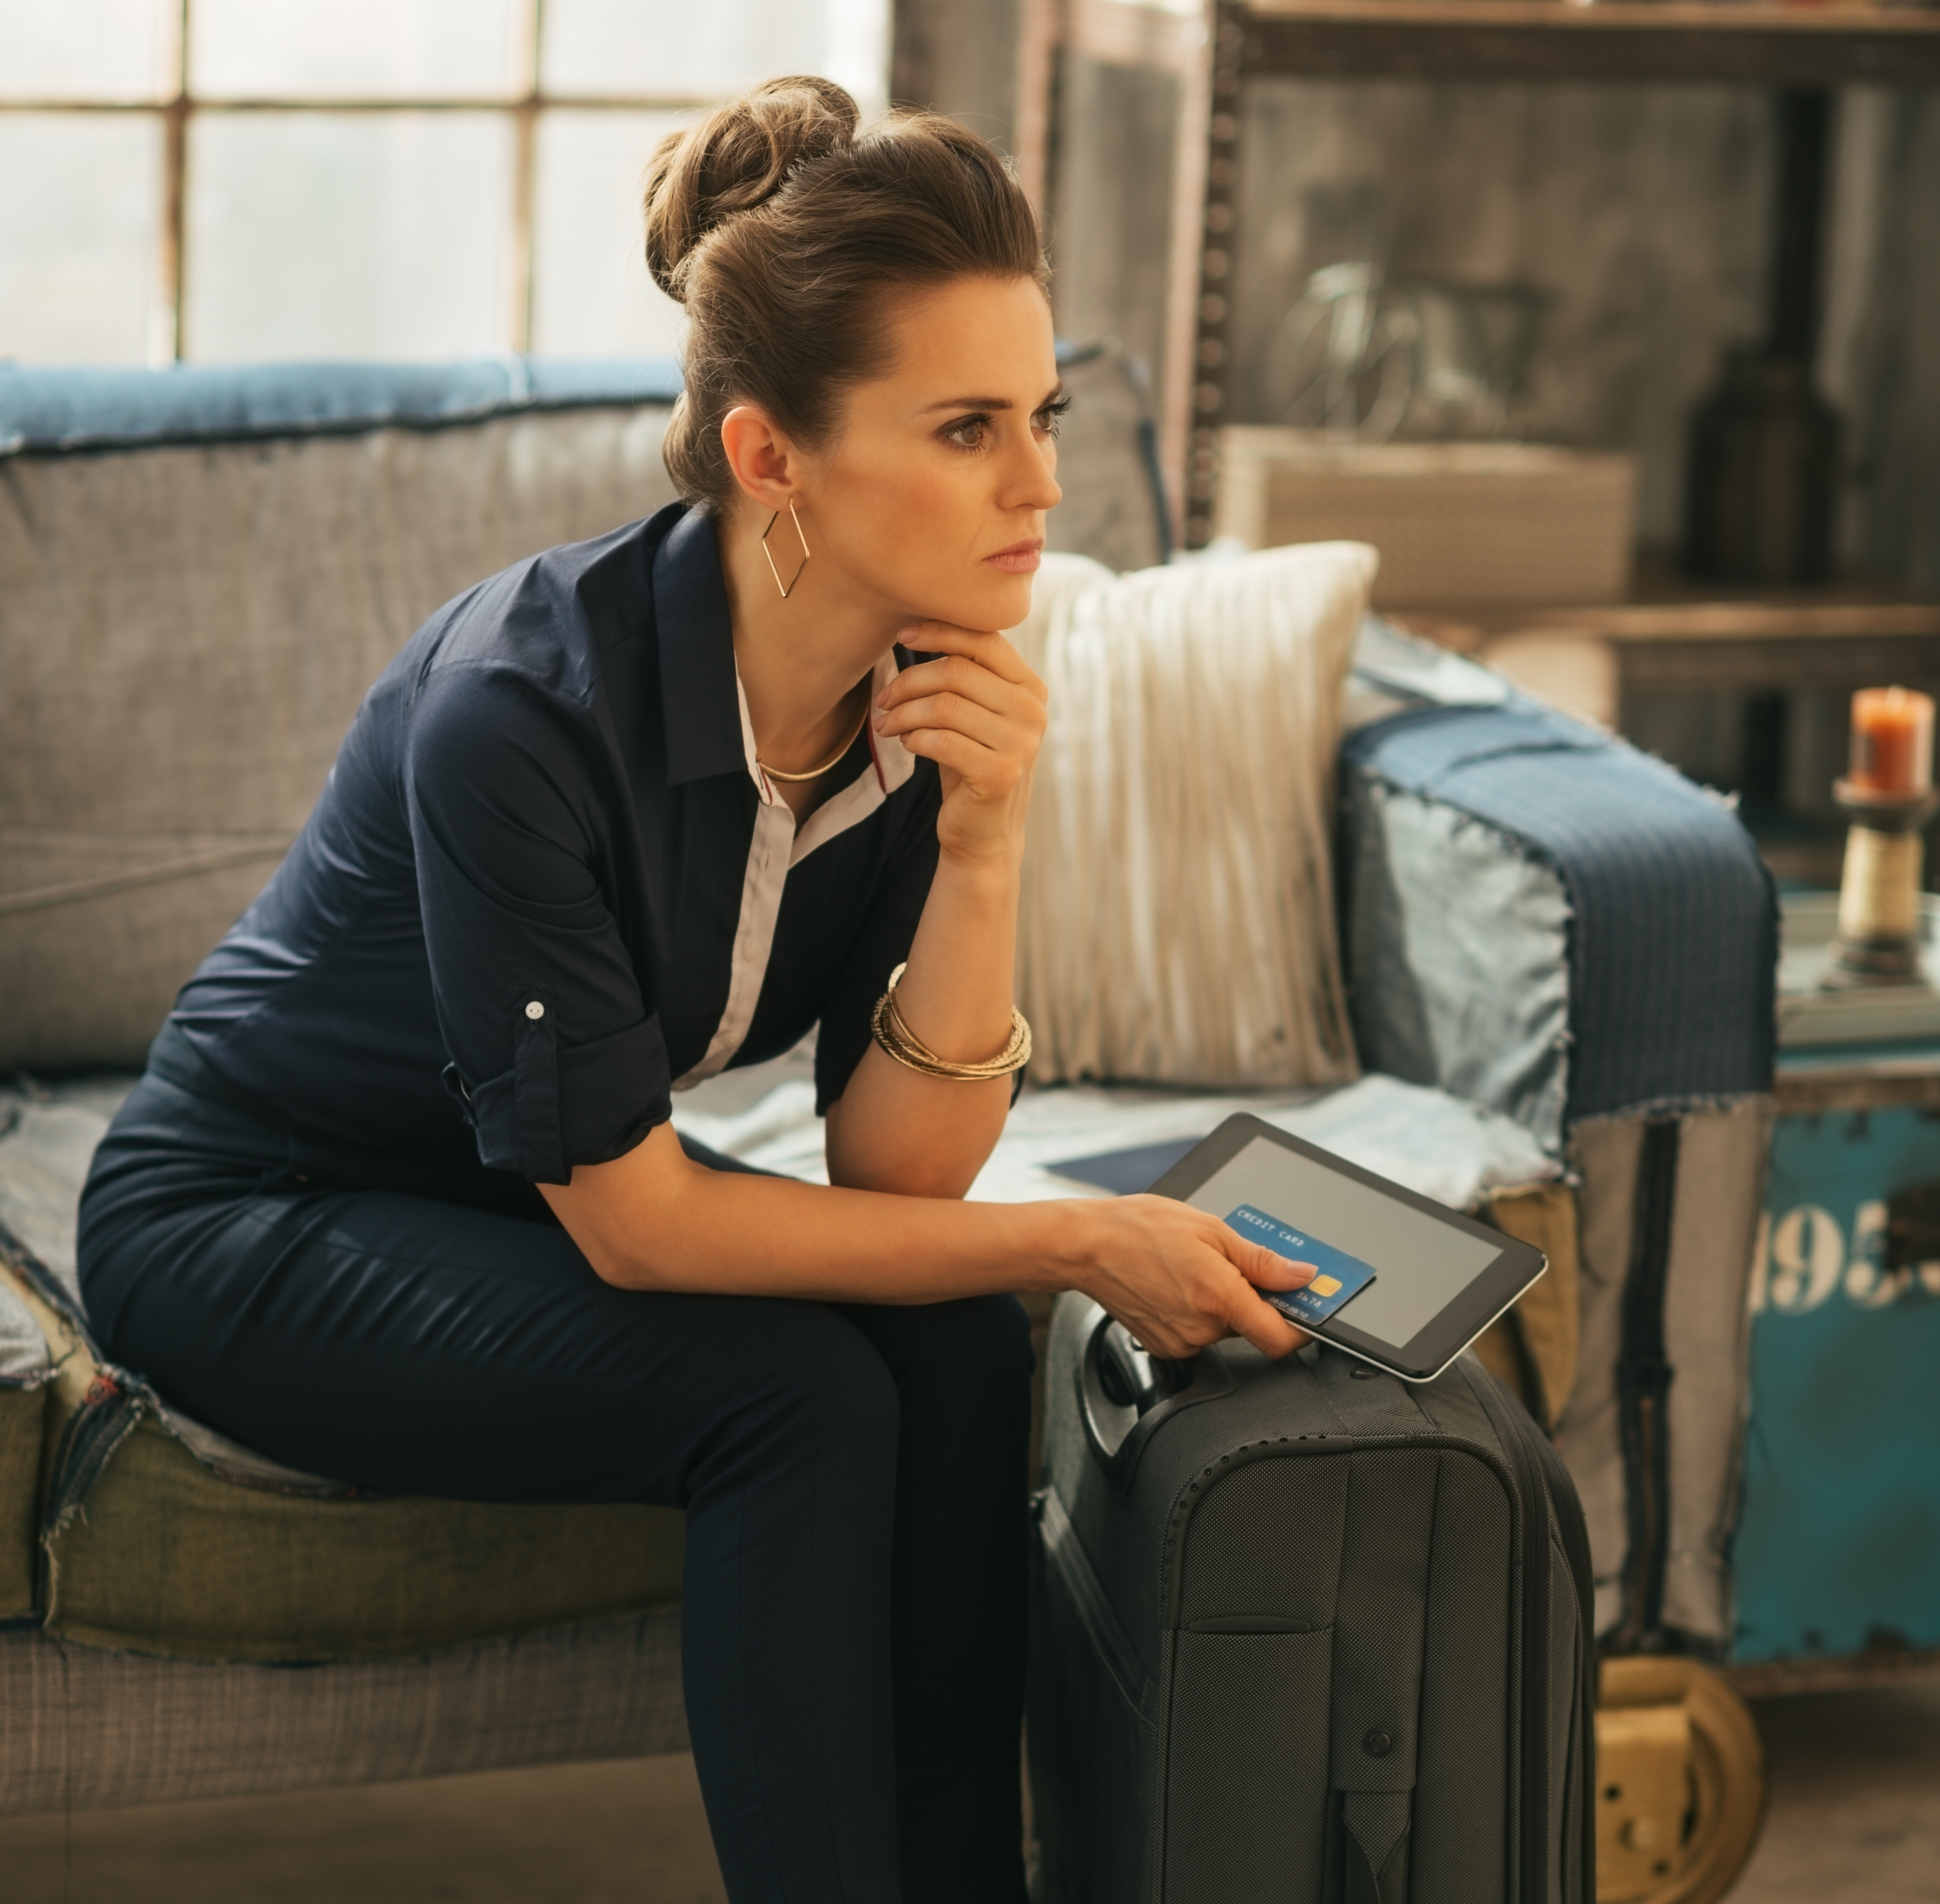 Airline Travel Tips – Skipping the Checked Bags